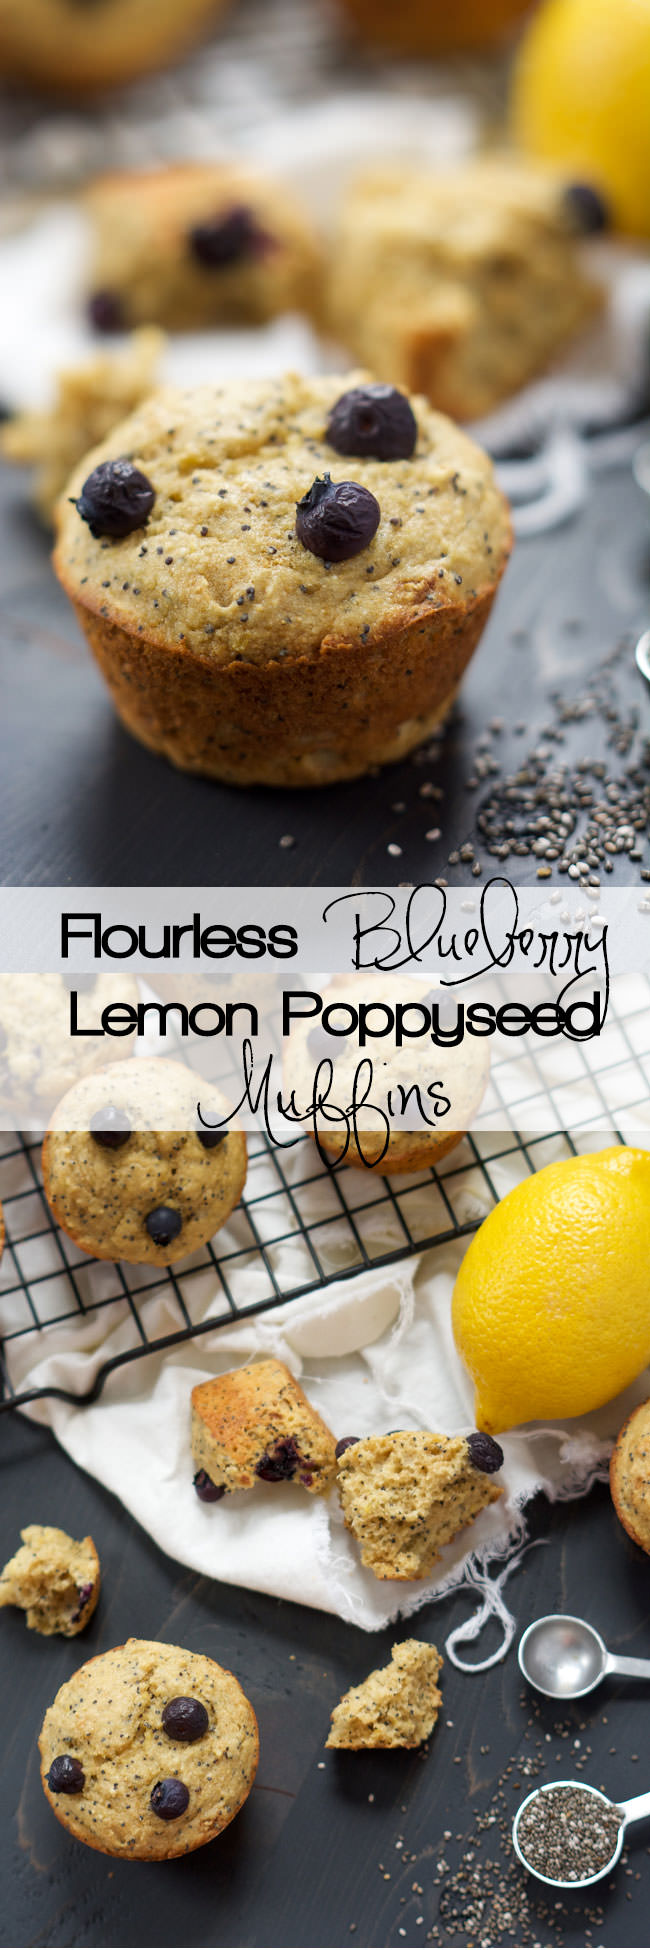 Sweet, nutty and full of blueberries; these Flourless Blueberry Lemon Poppyseed Muffins are the perfect on the go breakfast or ideal for a lazy Sunday morning Brunch!